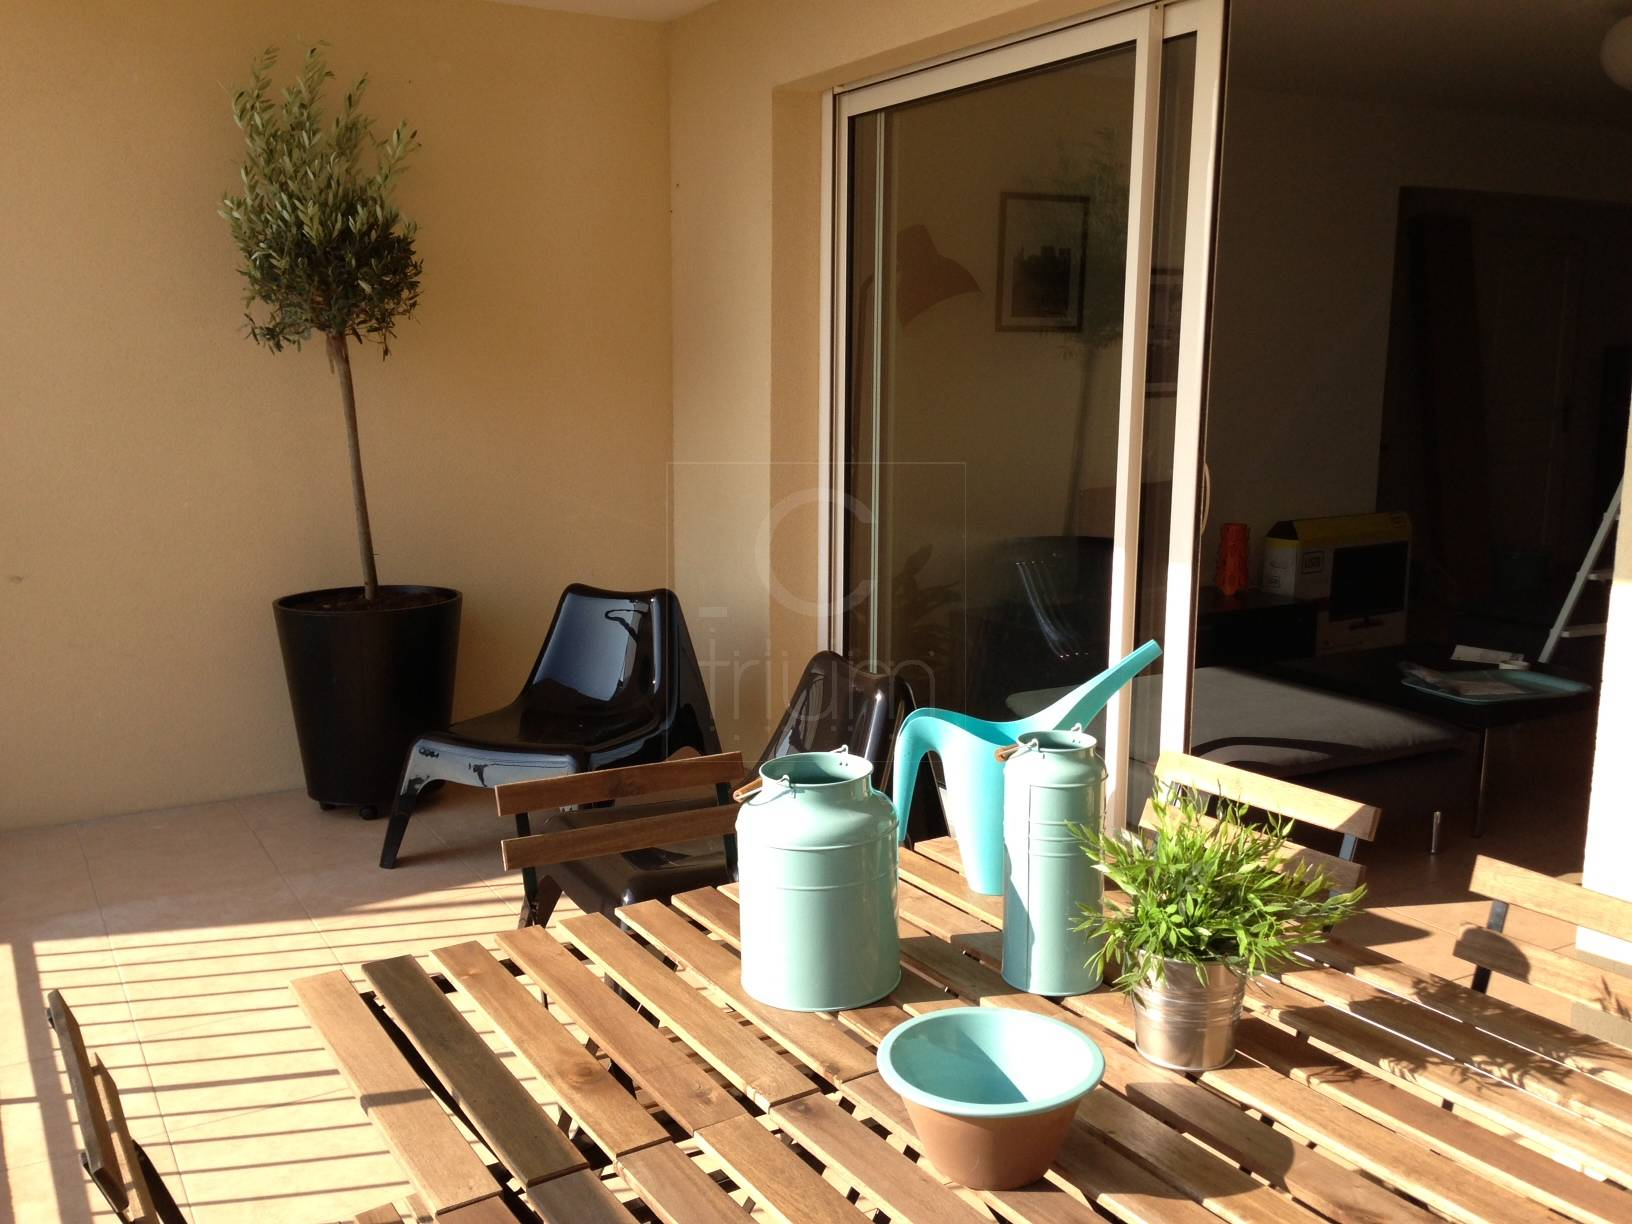 Location Appartement T4 F4 Marseille 7eme Bompard Terrasse